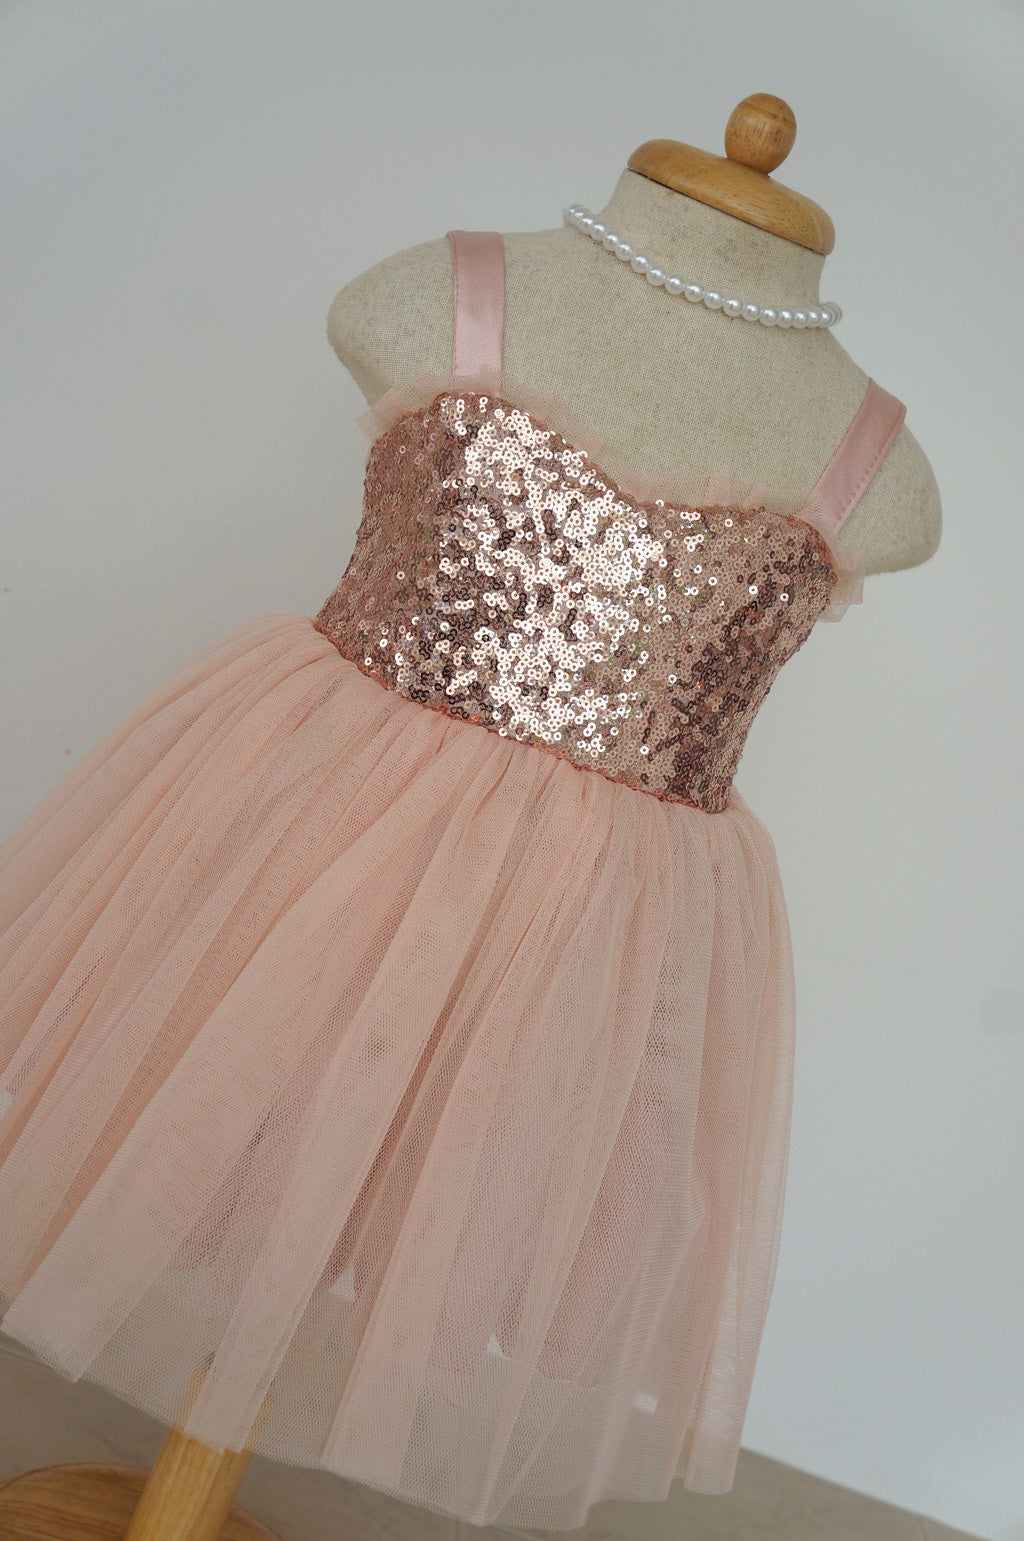 b833335a3 ... Flower girl dress rose gold and blush tulle dress Junior bridesmaid  dress Blush flower girl dress ...